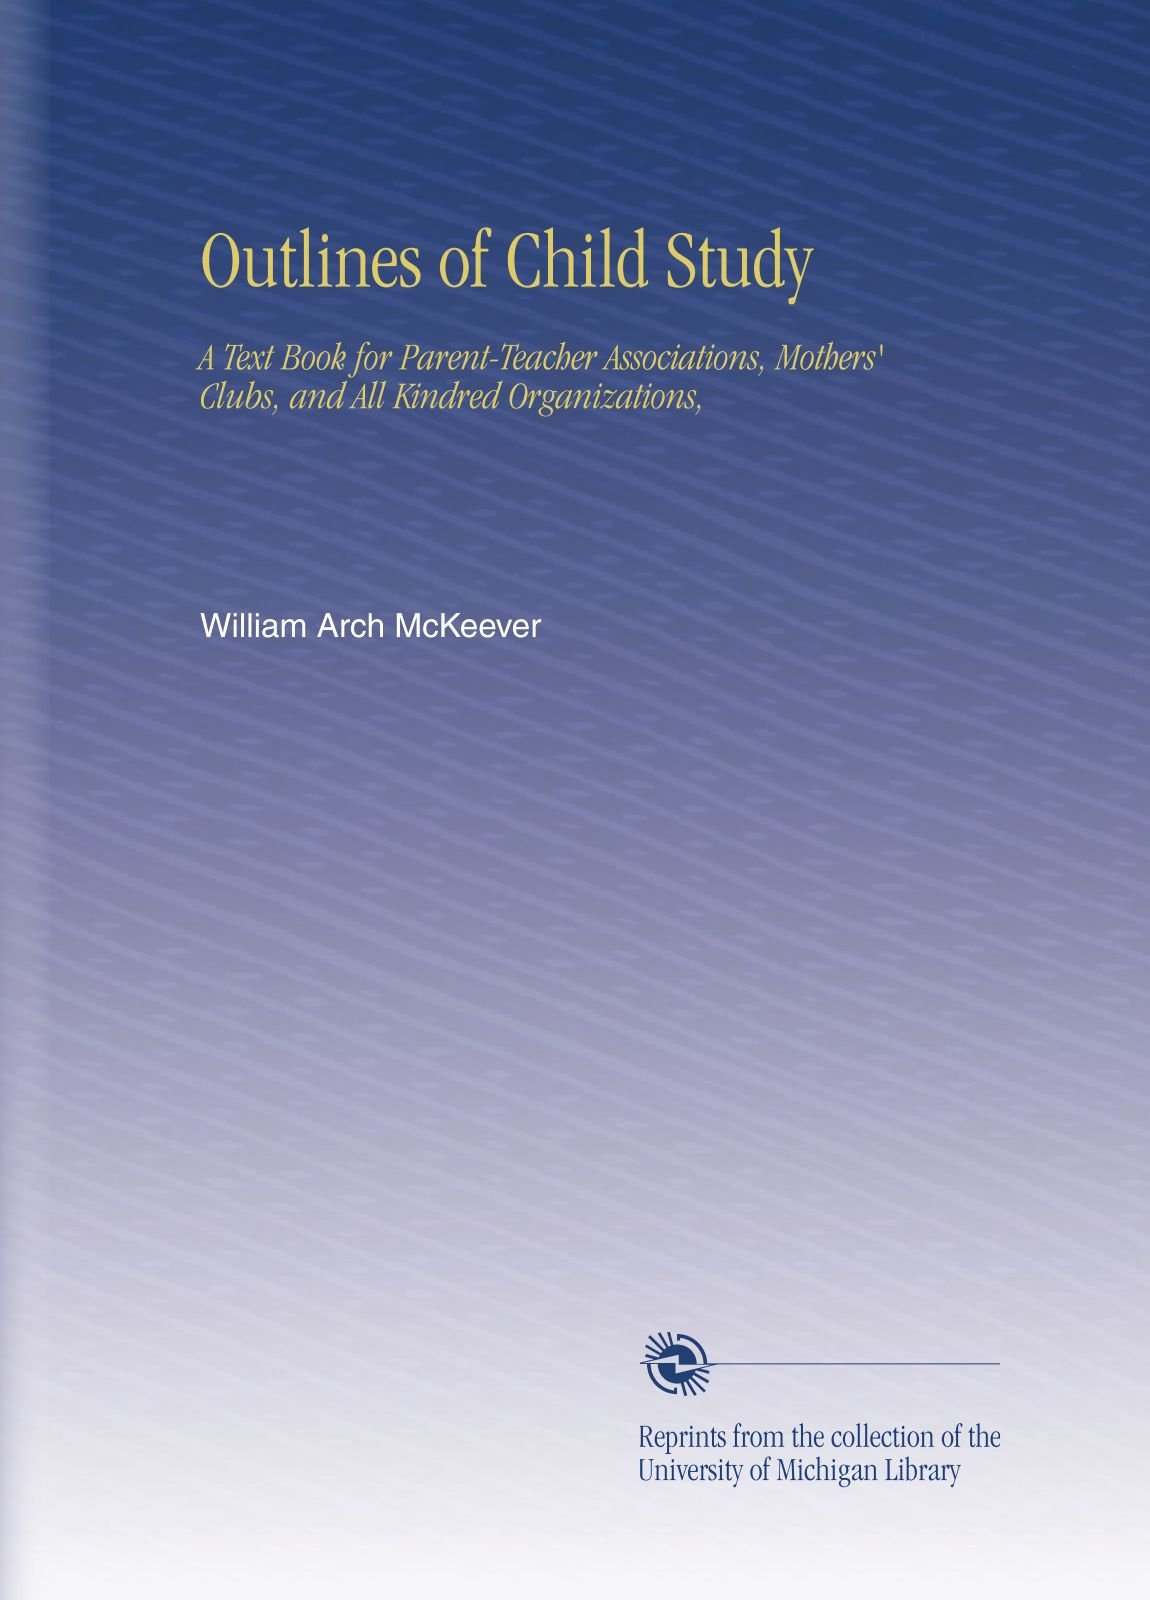 Download Outlines of Child Study: A Text Book for Parent-Teacher Associations, Mothers' Clubs, and All Kindred Organizations, ebook